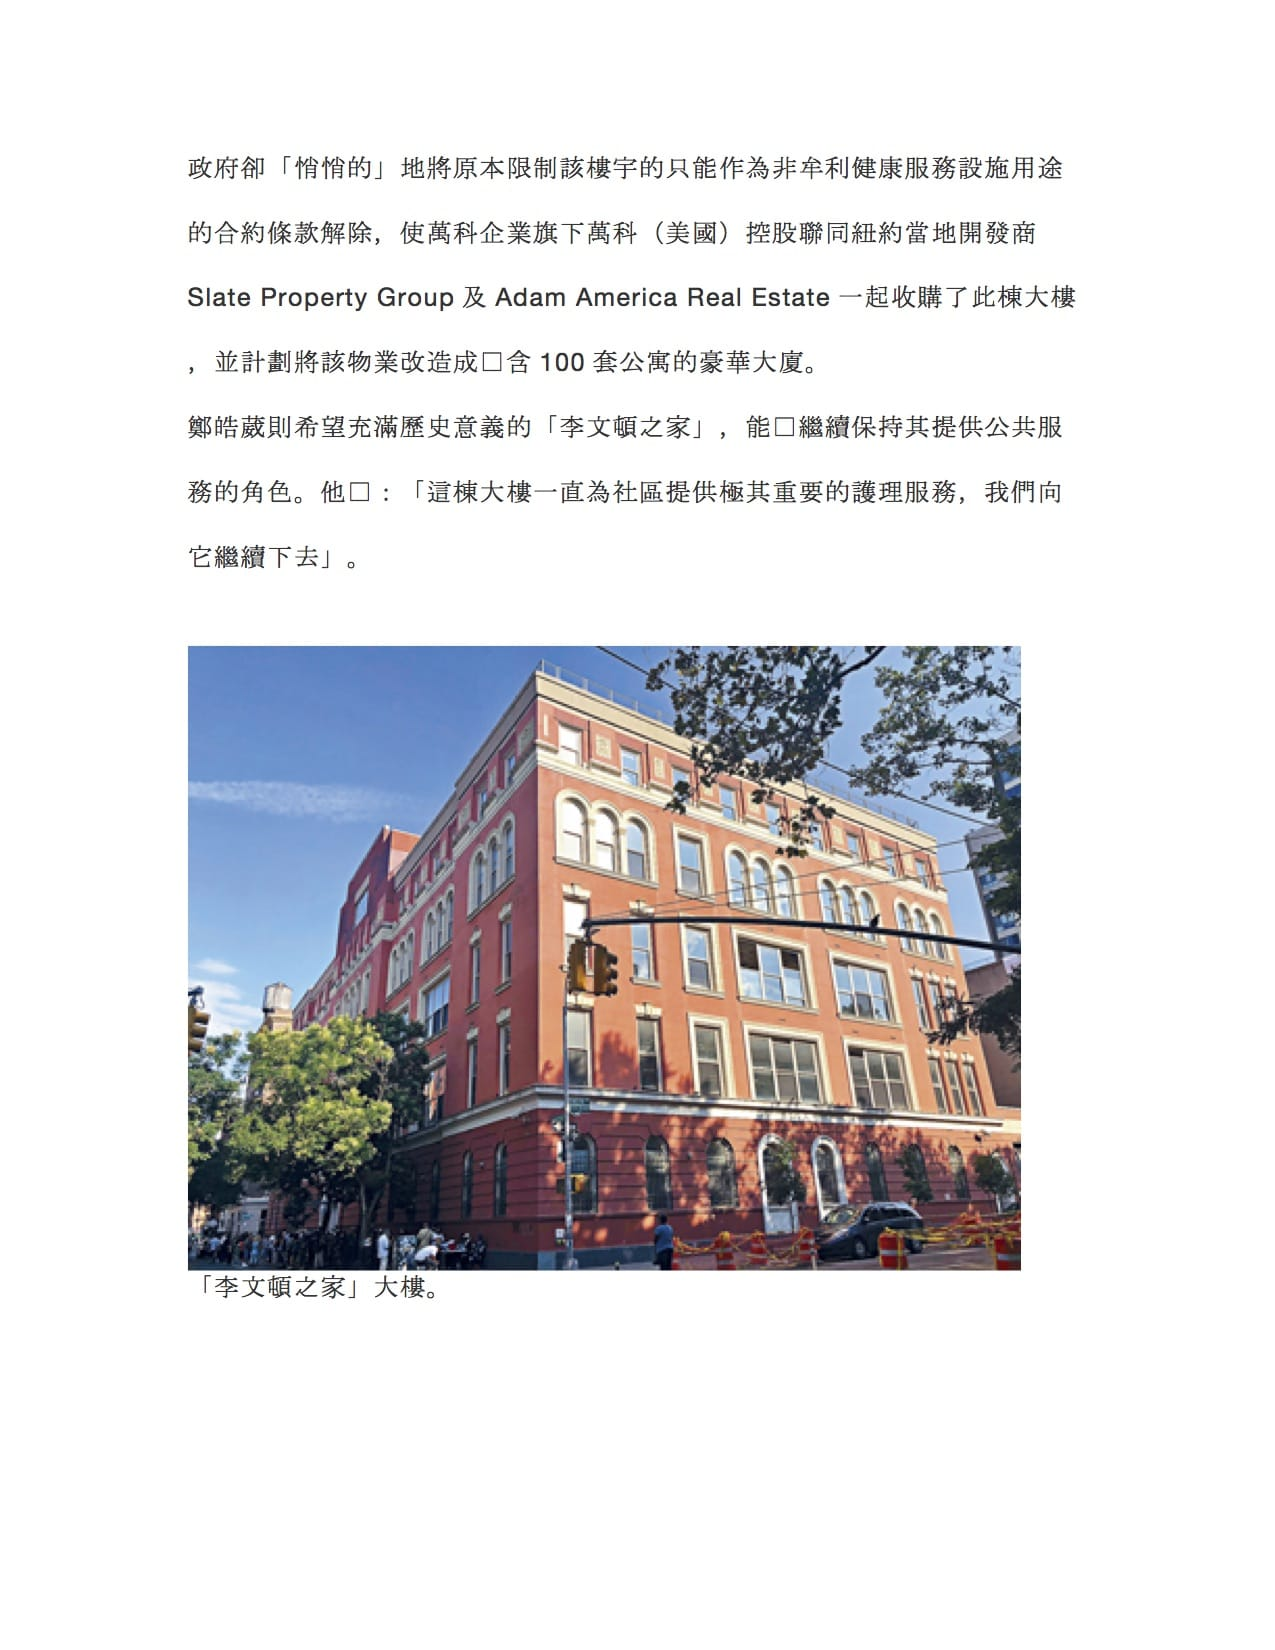 Update:More Accurate English Translation of SingTao on